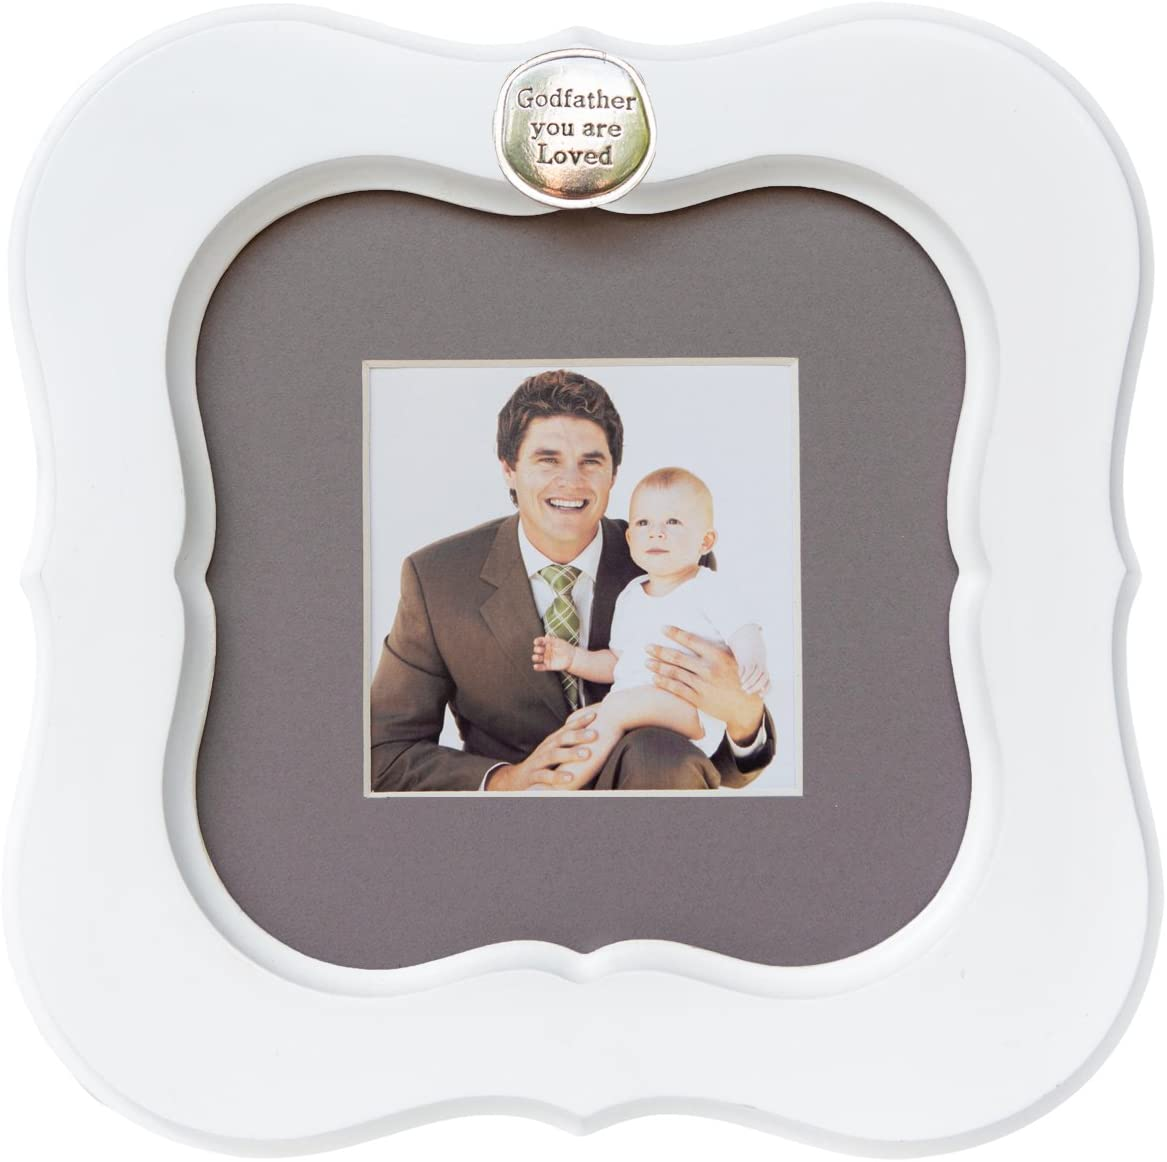 Godfather You Are Loved White Greige Mat Frame - Holds 3 x 3 Inch Photo